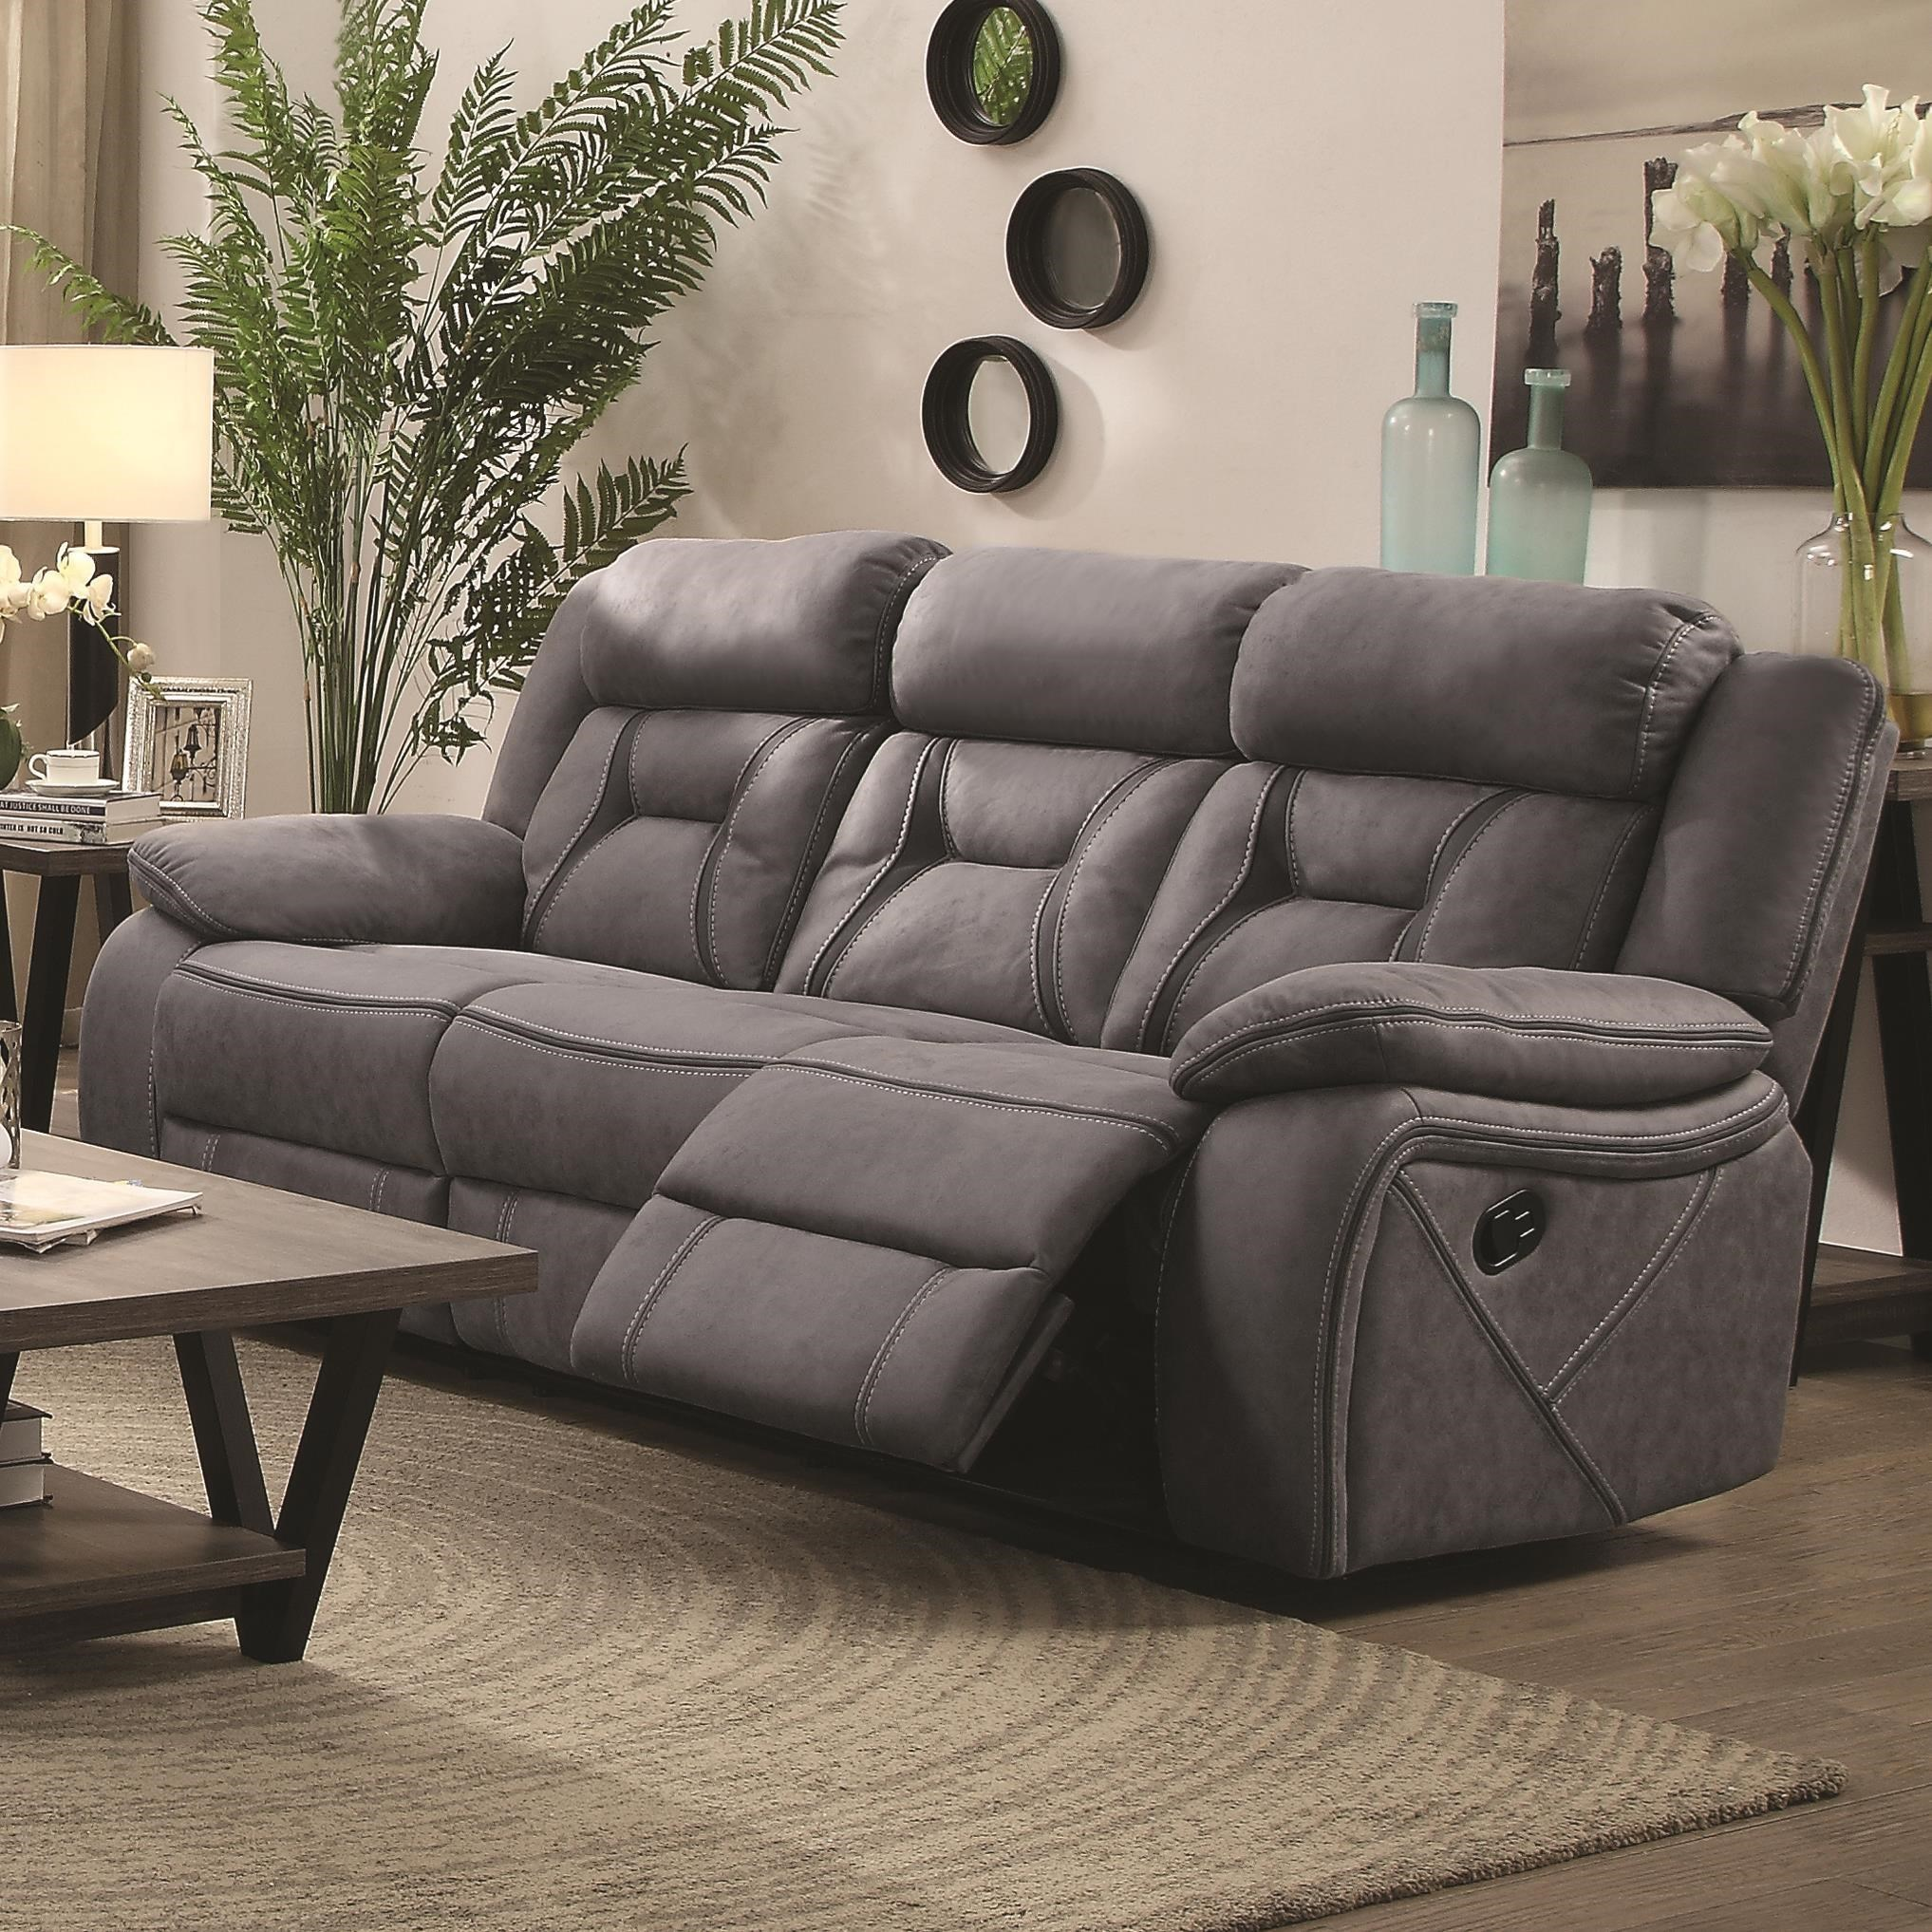 Ordinaire Coaster Houston Casual Pillow Padded Reclining Sofa With Contrast Stitching    Coaster Fine Furniture